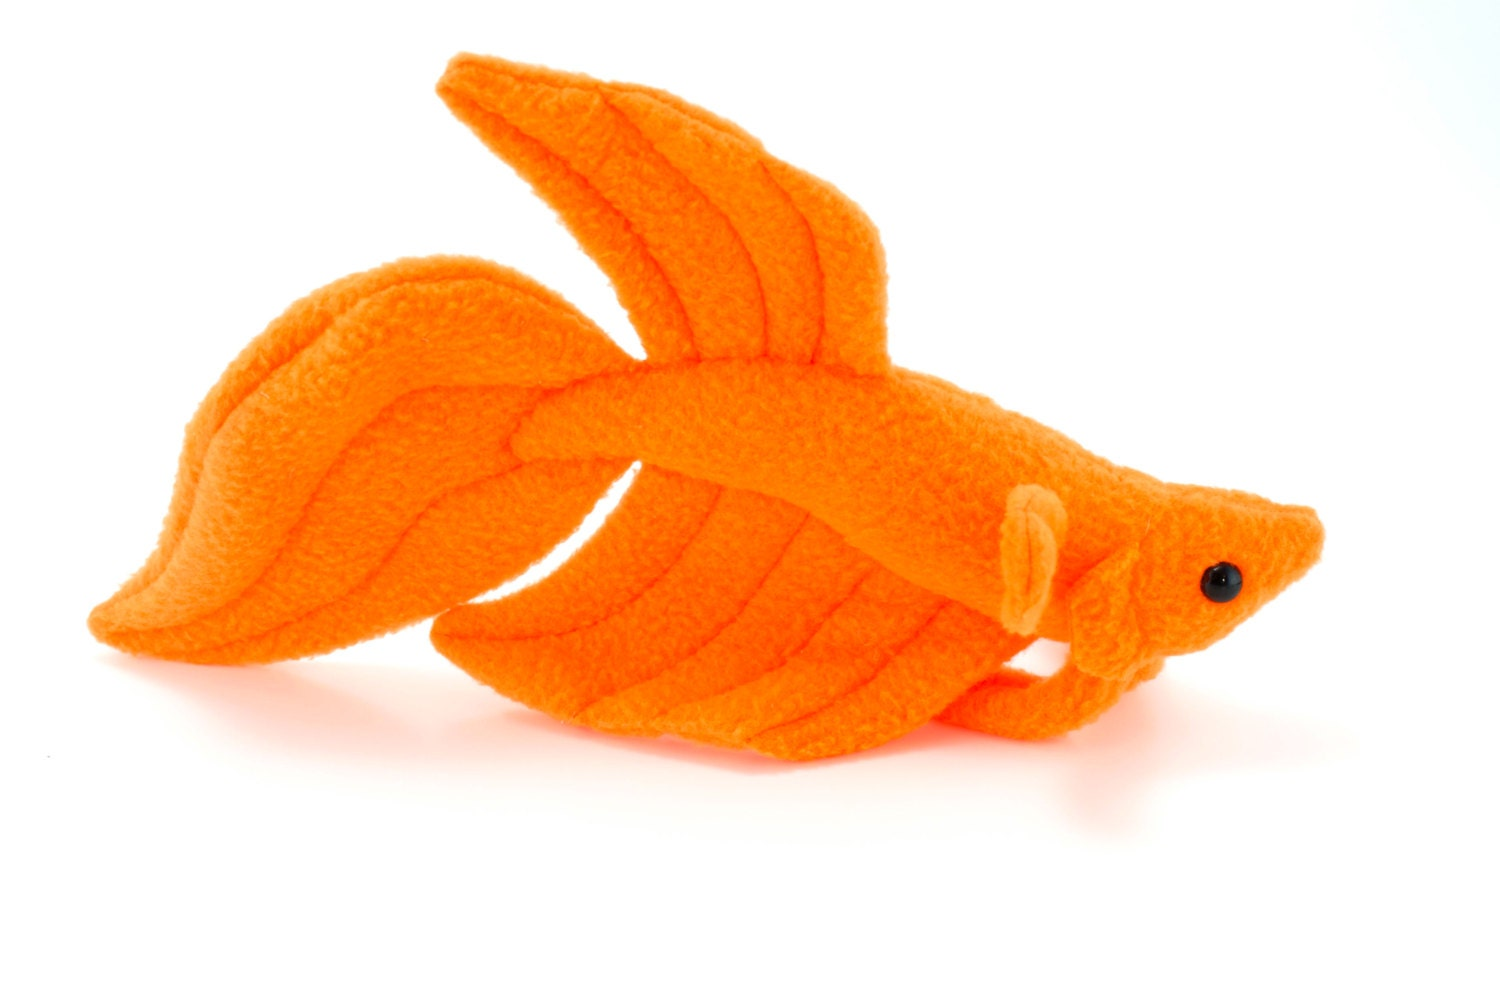 Neon orange betta fish stuffed animal plush toy veil tail for Fish stuffed animal